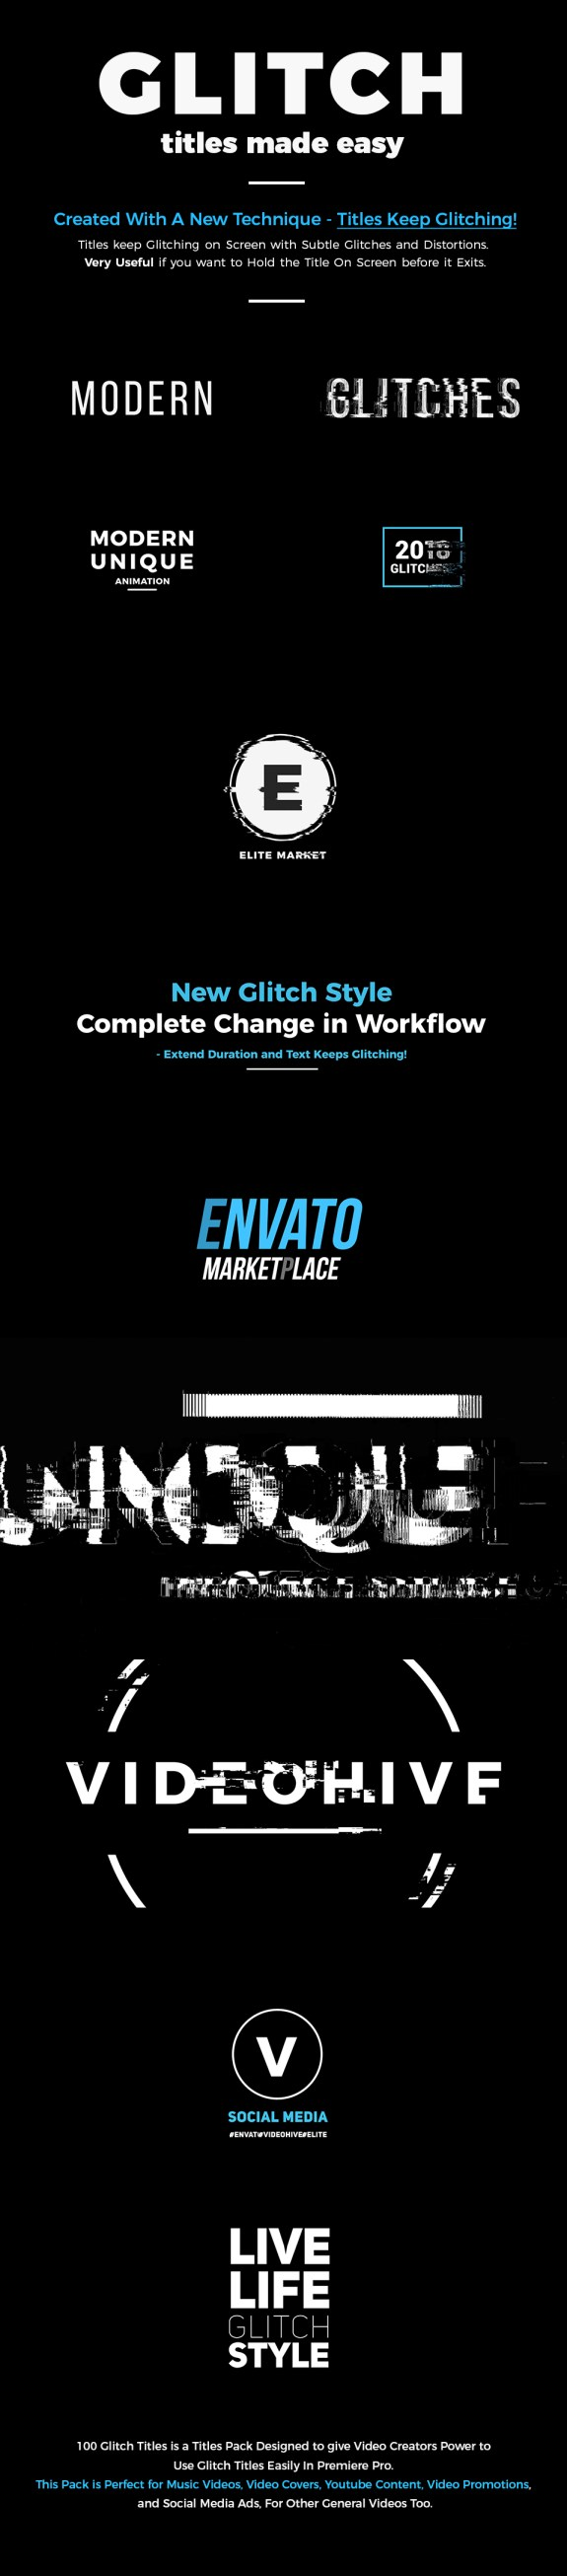 VIDEOHIVE 100 GLITCH TITLES   AFTER EFFECTS VERSION - Adobe After